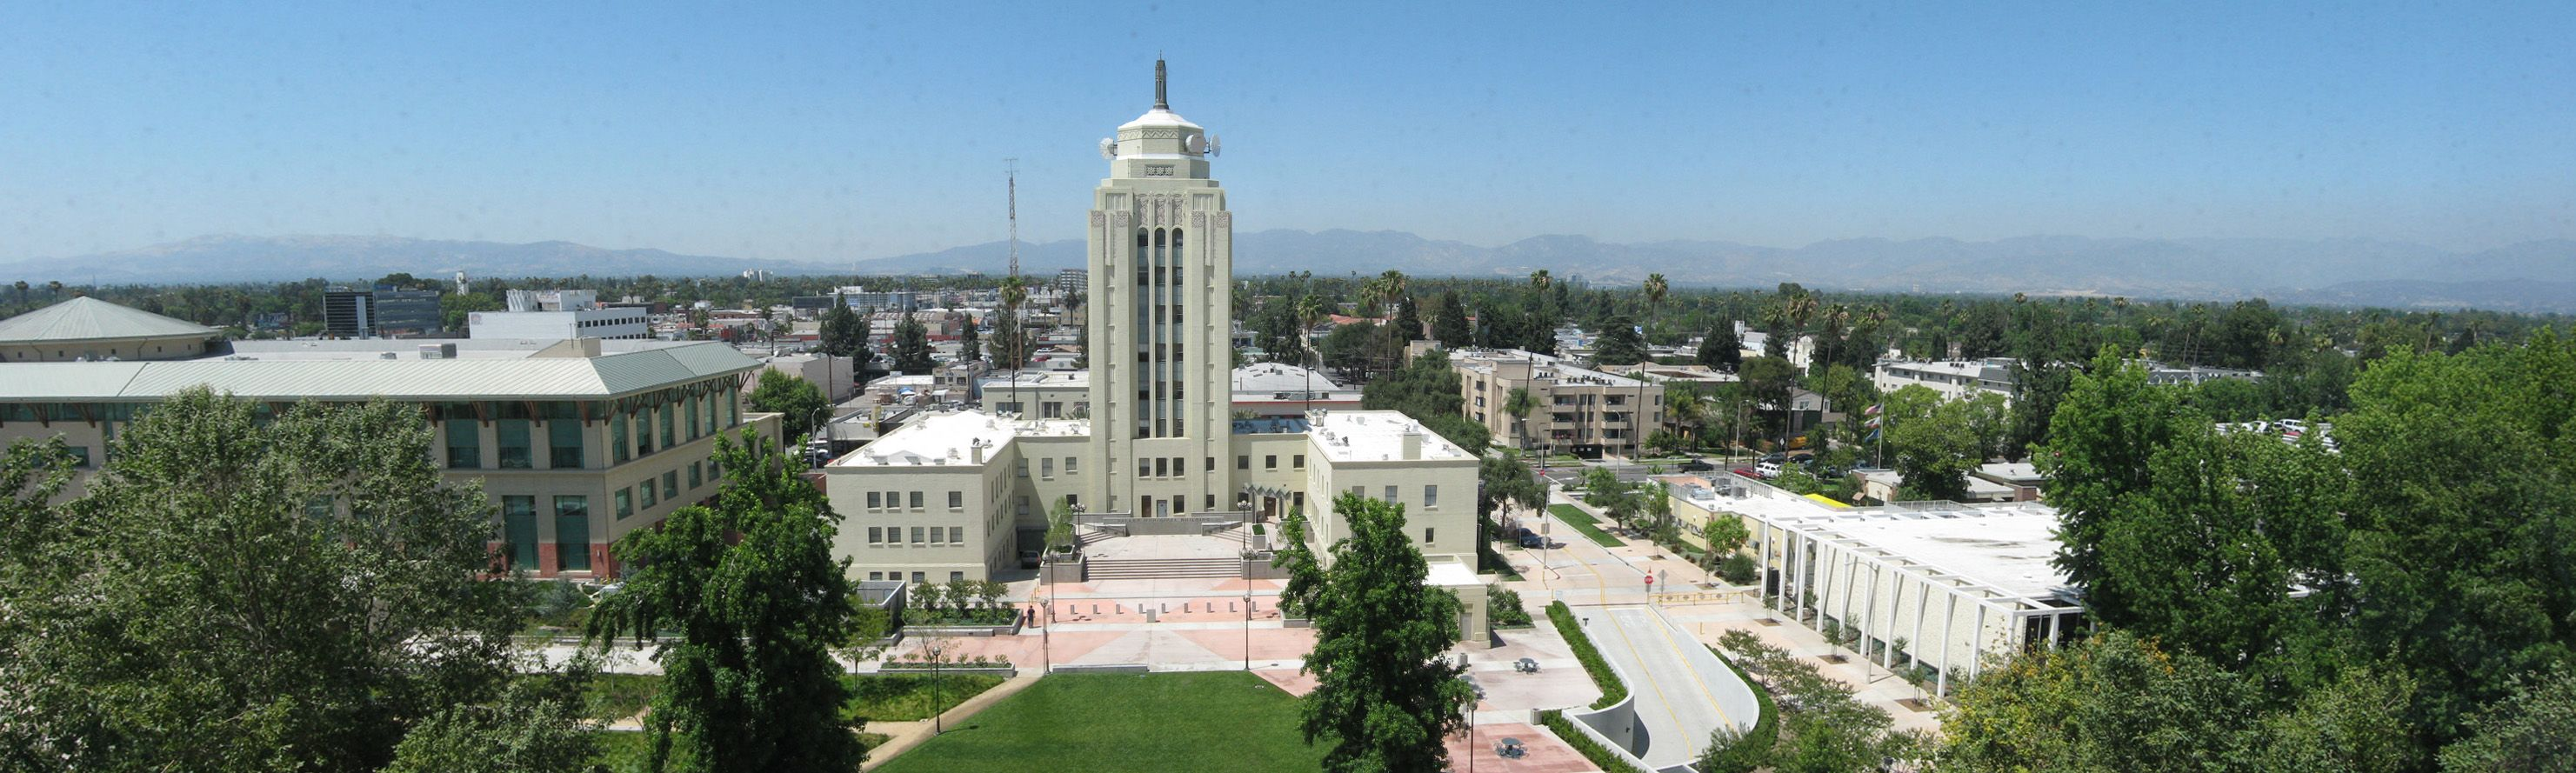 Van nuys civic center includes van nuys municipal building council van nuys civic center includes van nuys municipal building council district 6 field office 1betcityfo Choice Image